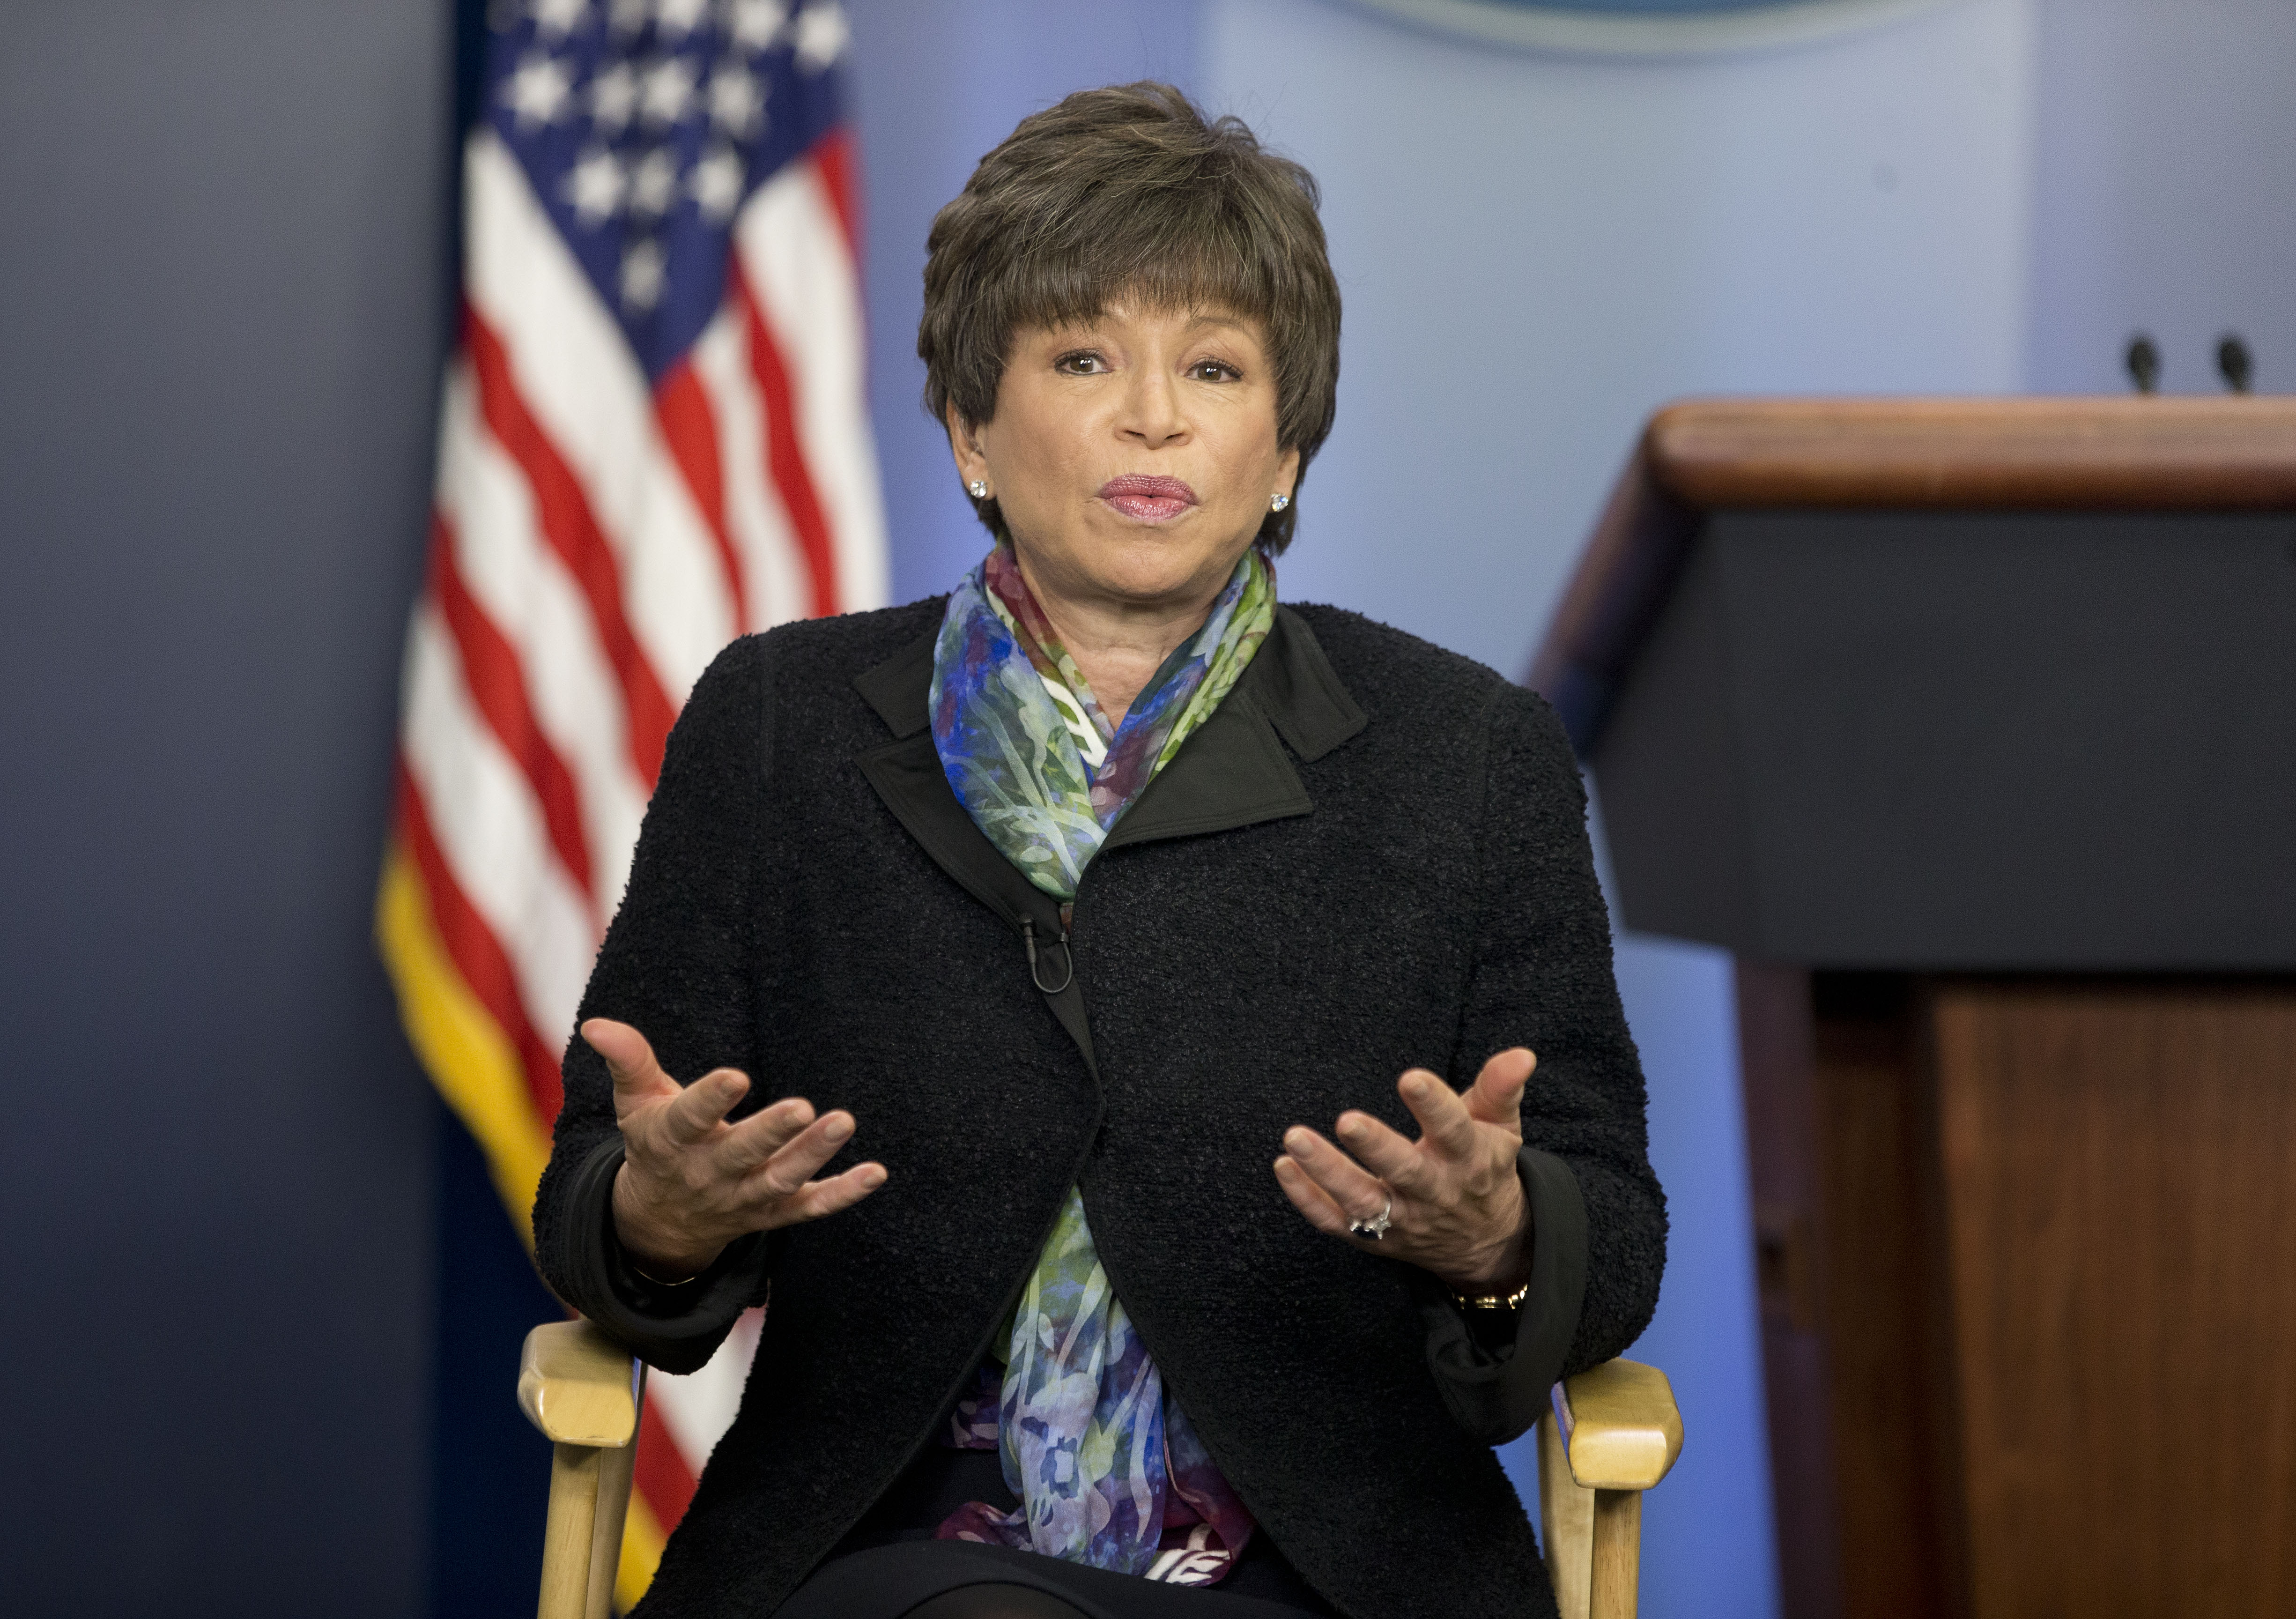 Senior White House adviser Valerie Jarrett speaks during a morning television interview with CBS in the Brady Press Briefing room of the White House in Washington, Wednesday, March 12, 2014. (AP Photo/Pablo Martinez Monsivais)